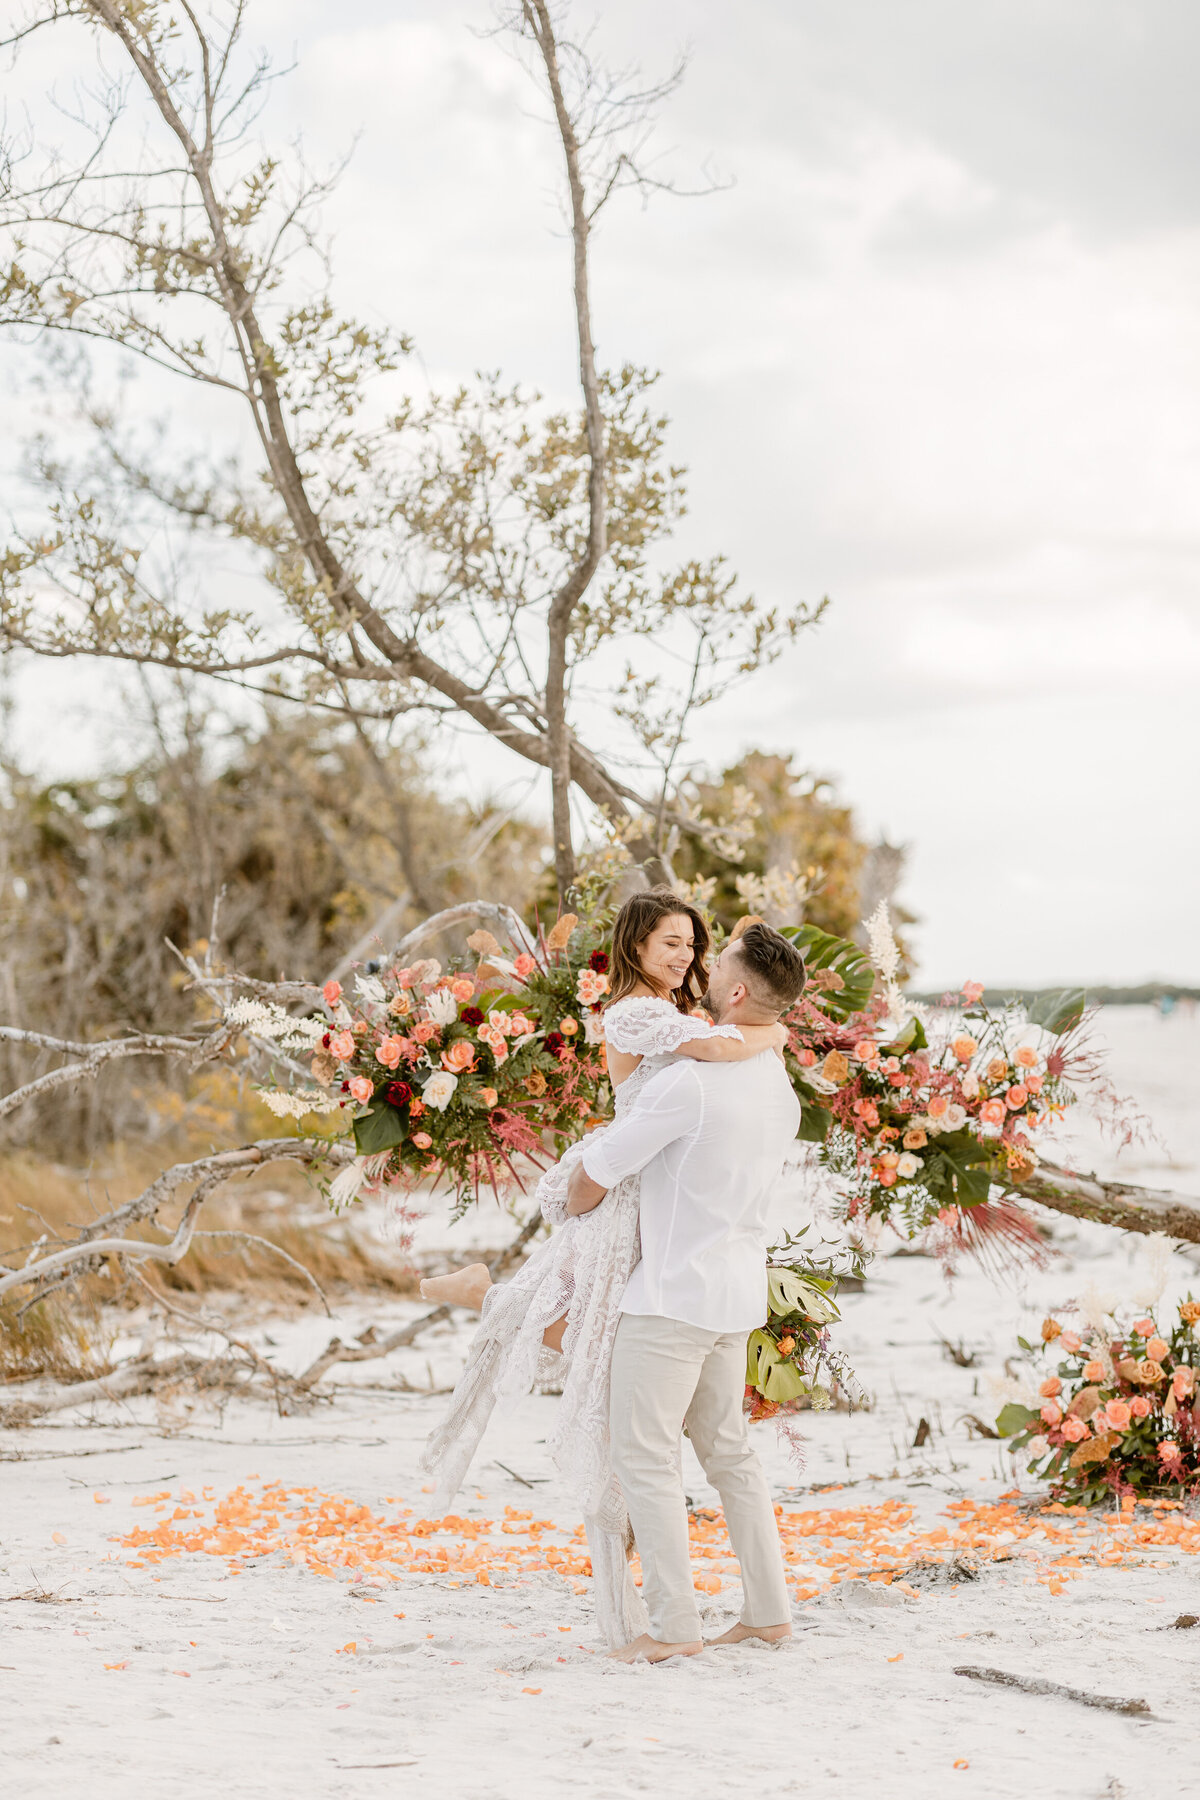 Beach Elopement in Saint Petersburg, Florida 10